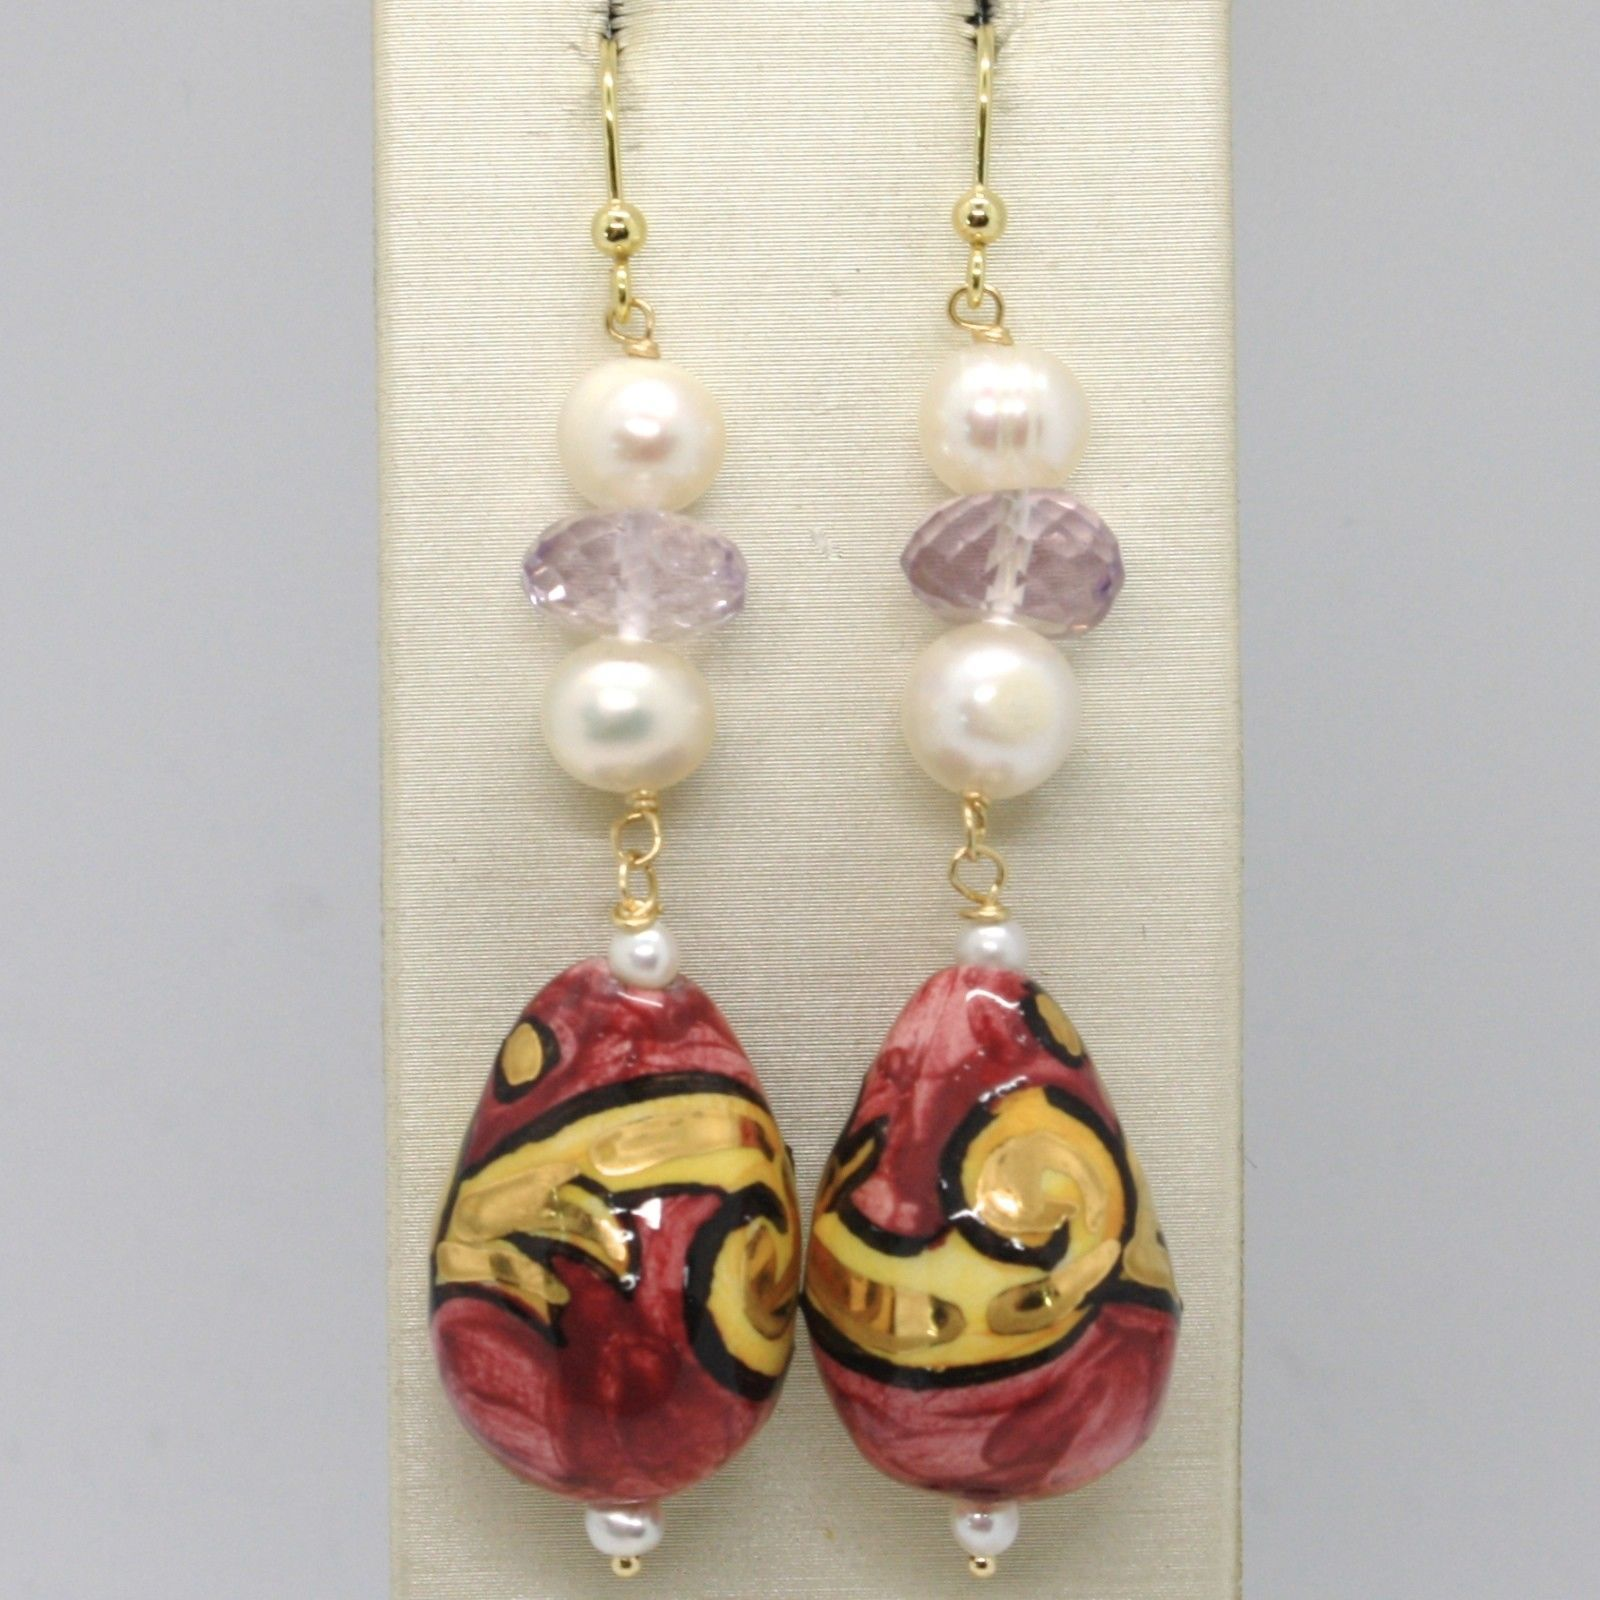 18K YELLOW GOLD EARRINGS AMETHYST PEARL & CERAMIC BIG DROP HAND PAINTED IN ITALY